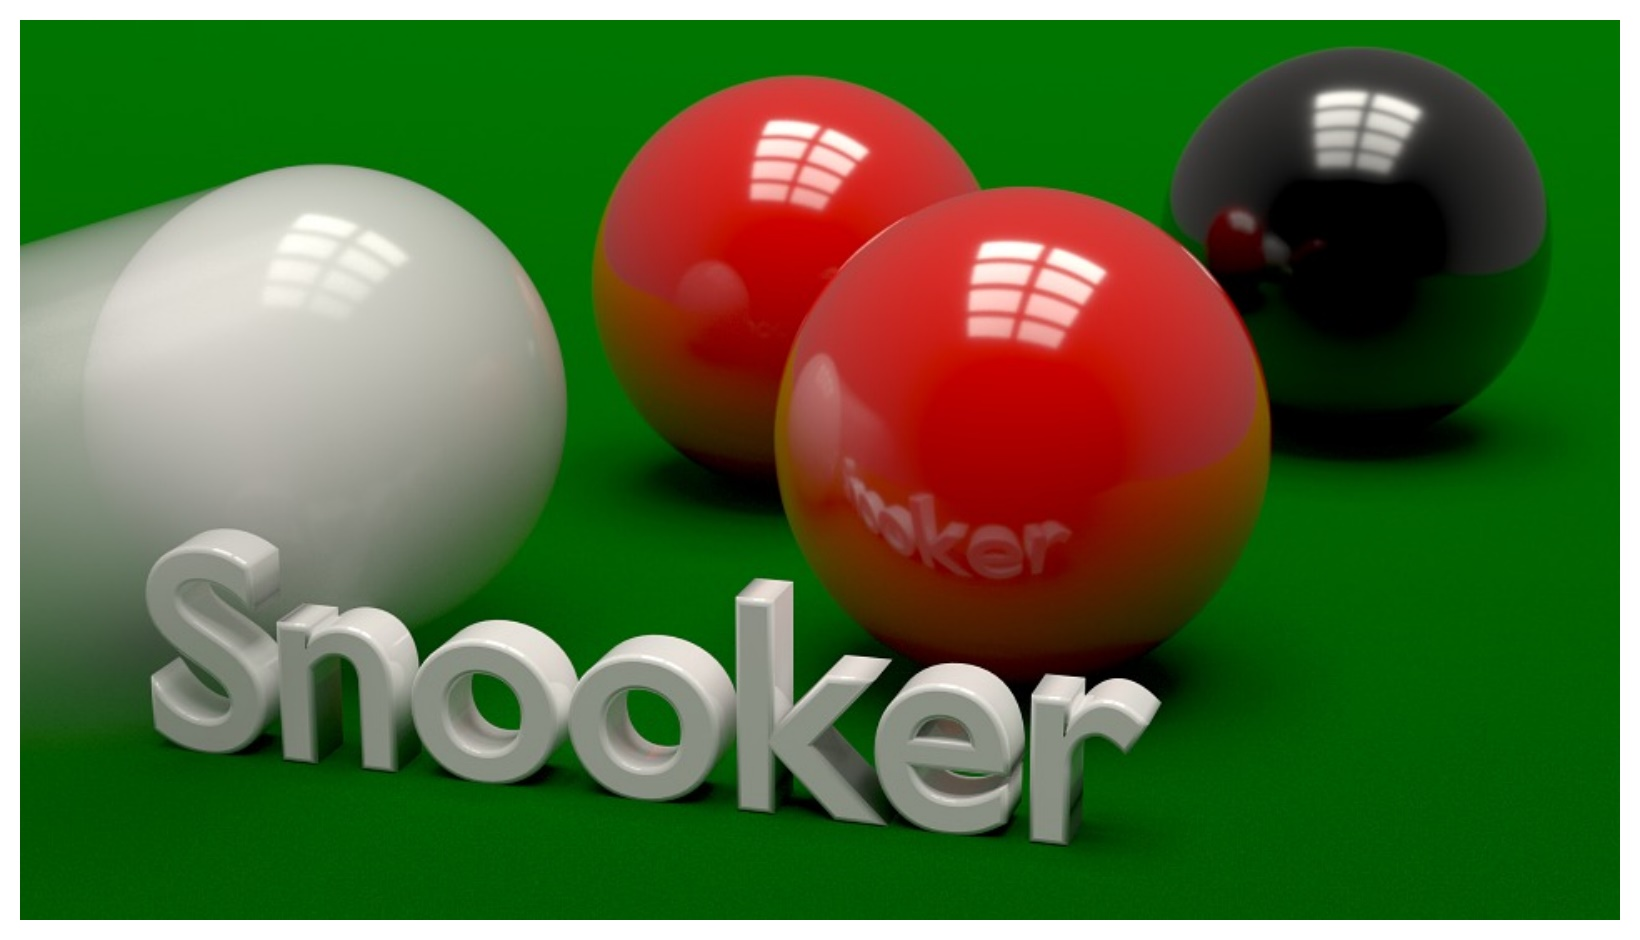 1640x940 - Snooker Wallpapers 15